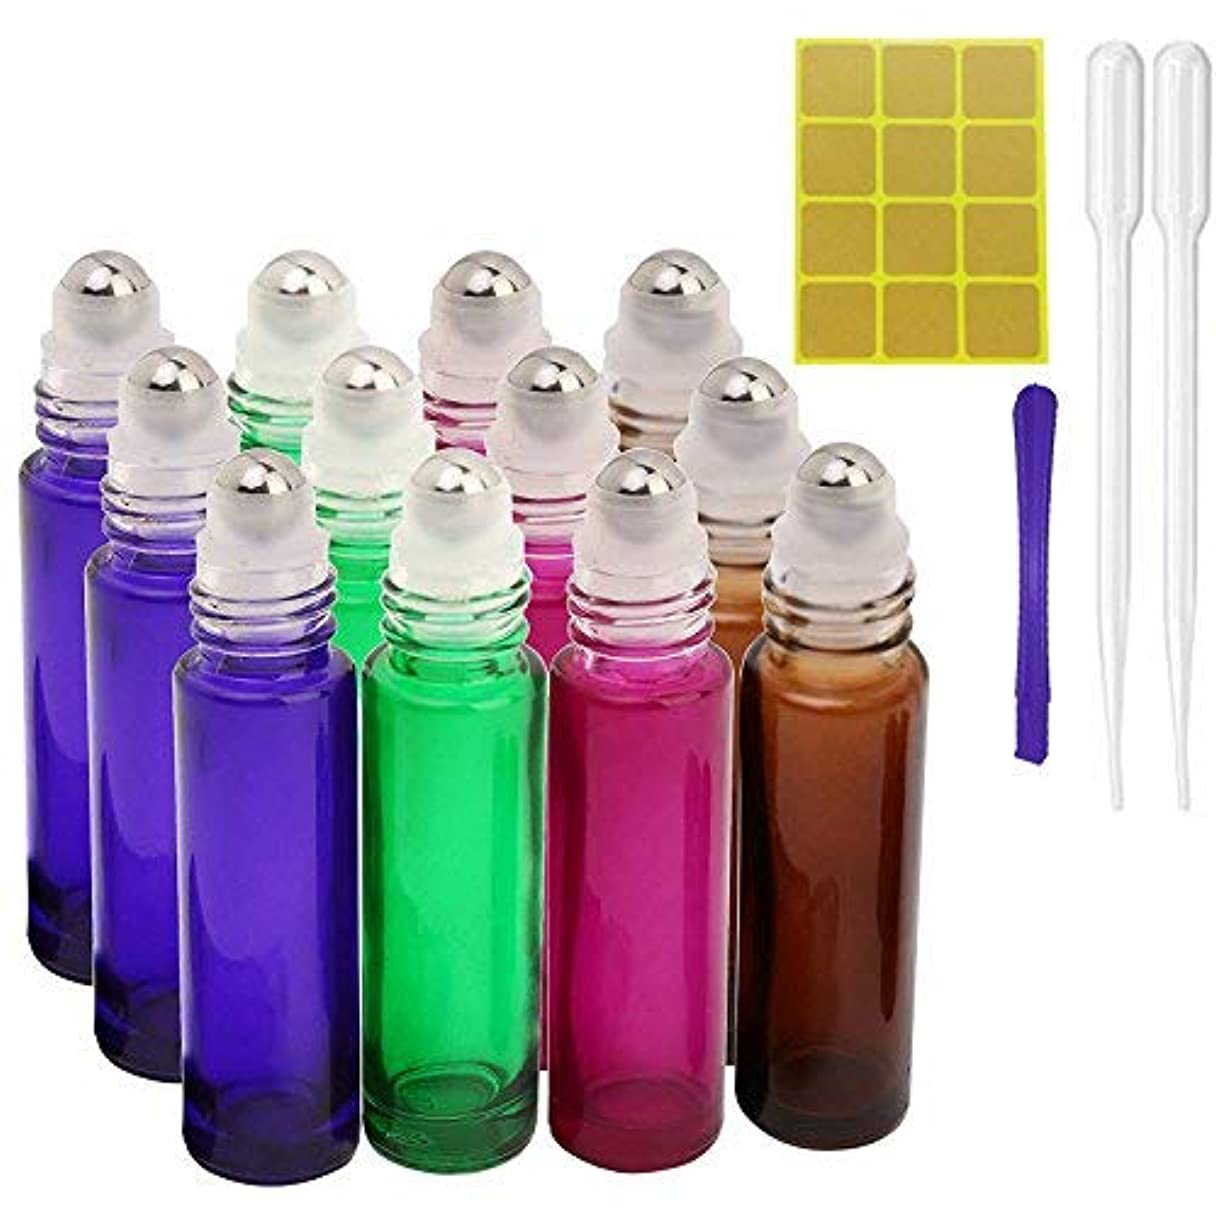 灰内部適合する12, 10ml Roller Bottles for Essential Oils - Glass Refillable Roller on Bottles with 1 Opener, 2 Droppers, 24...